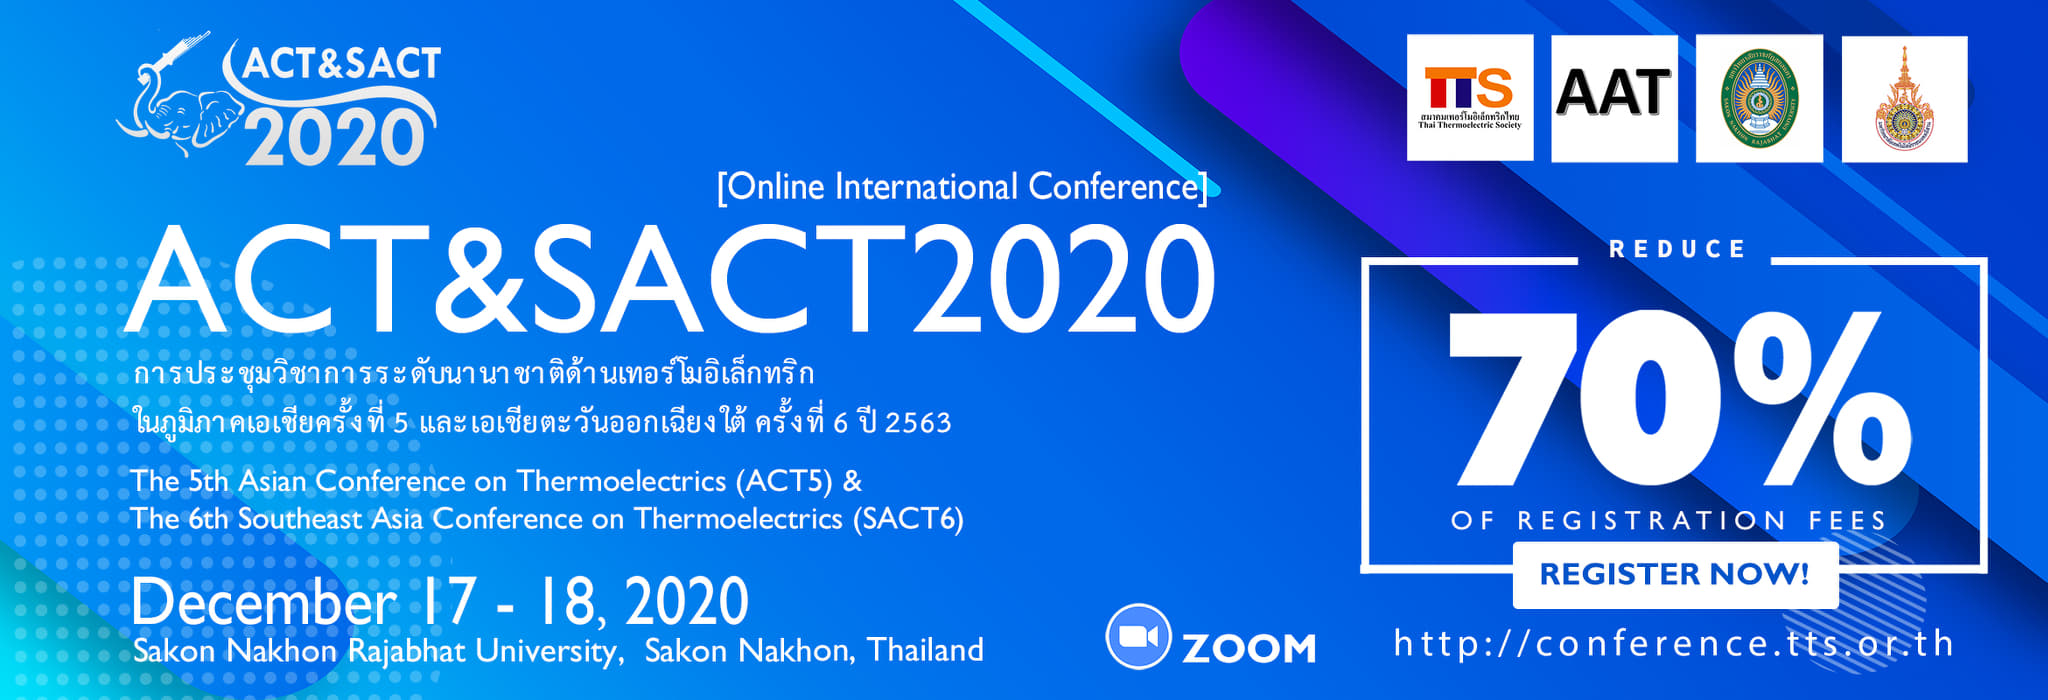 Welcome to The 5th Asian Conference on Thermoelectrics (ACT5) & The 6th Southeast Asia Conference on Thermoelectrics (SACT6)